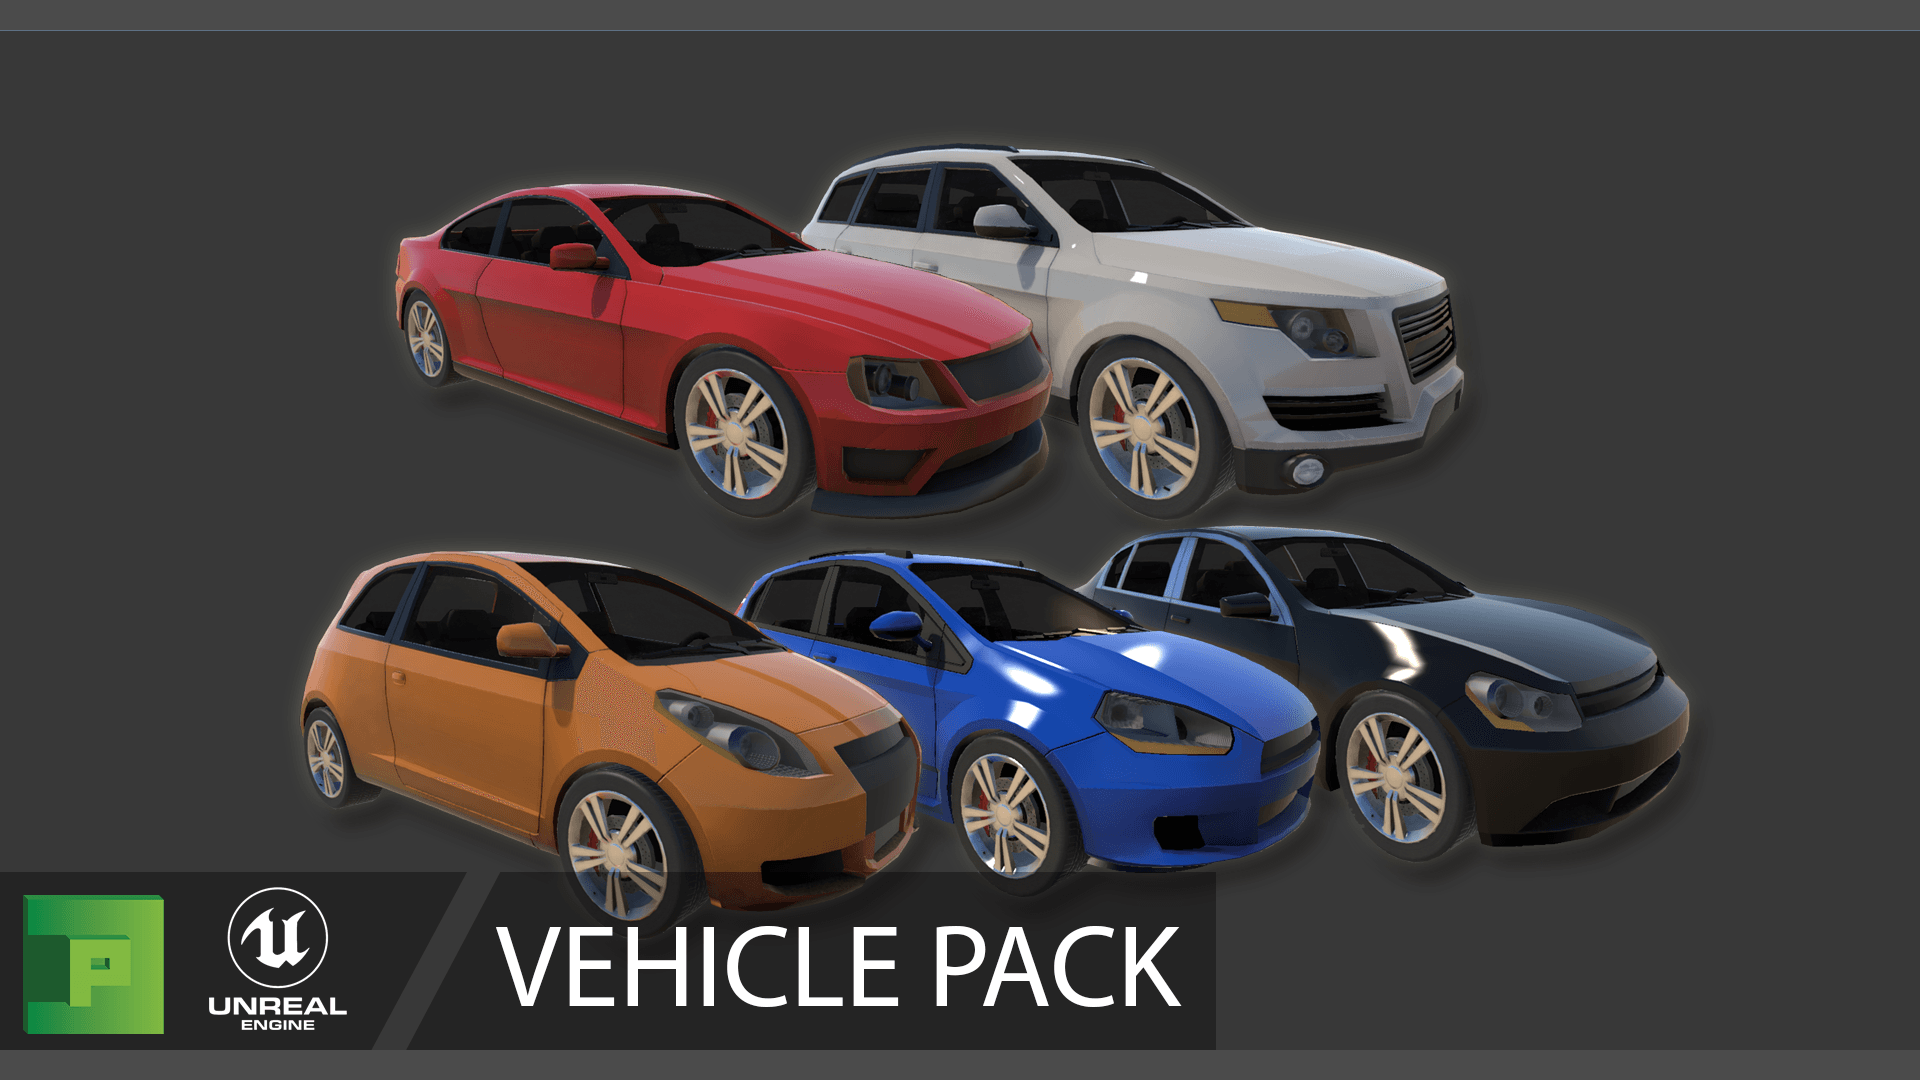 VehiclePack_01